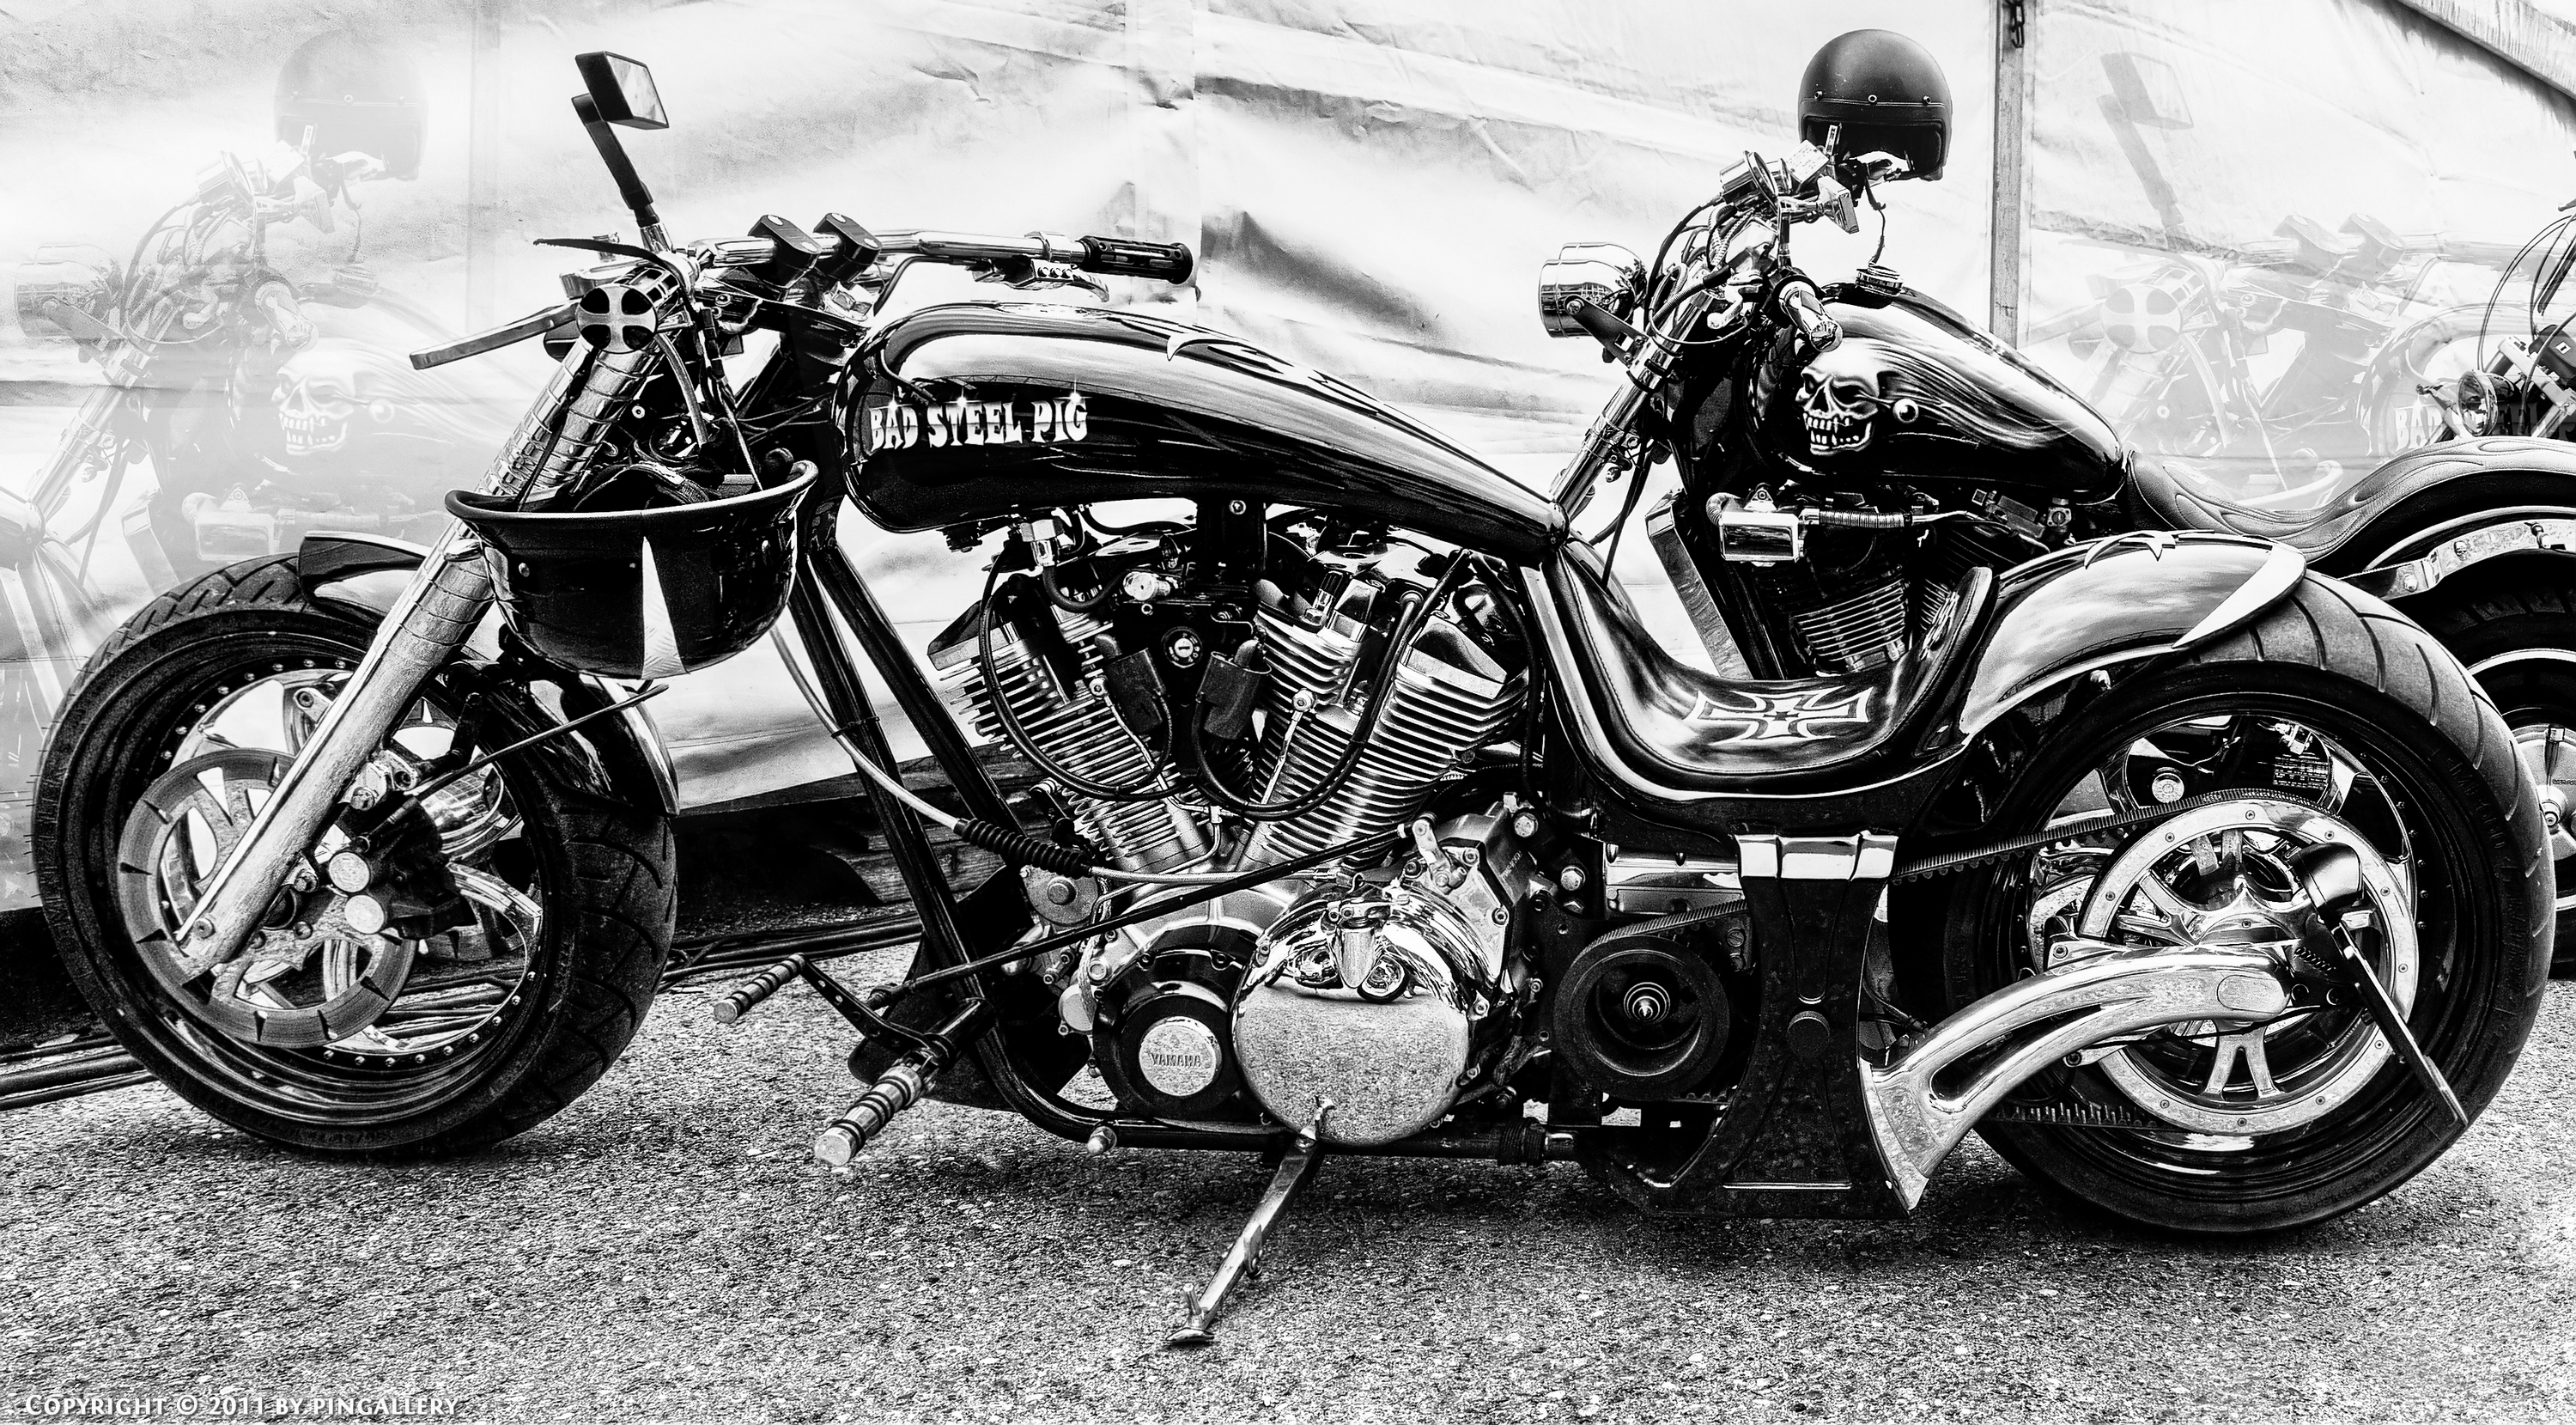 Harley Davidson HD wallpapers   Harley Davidson 3000x1659